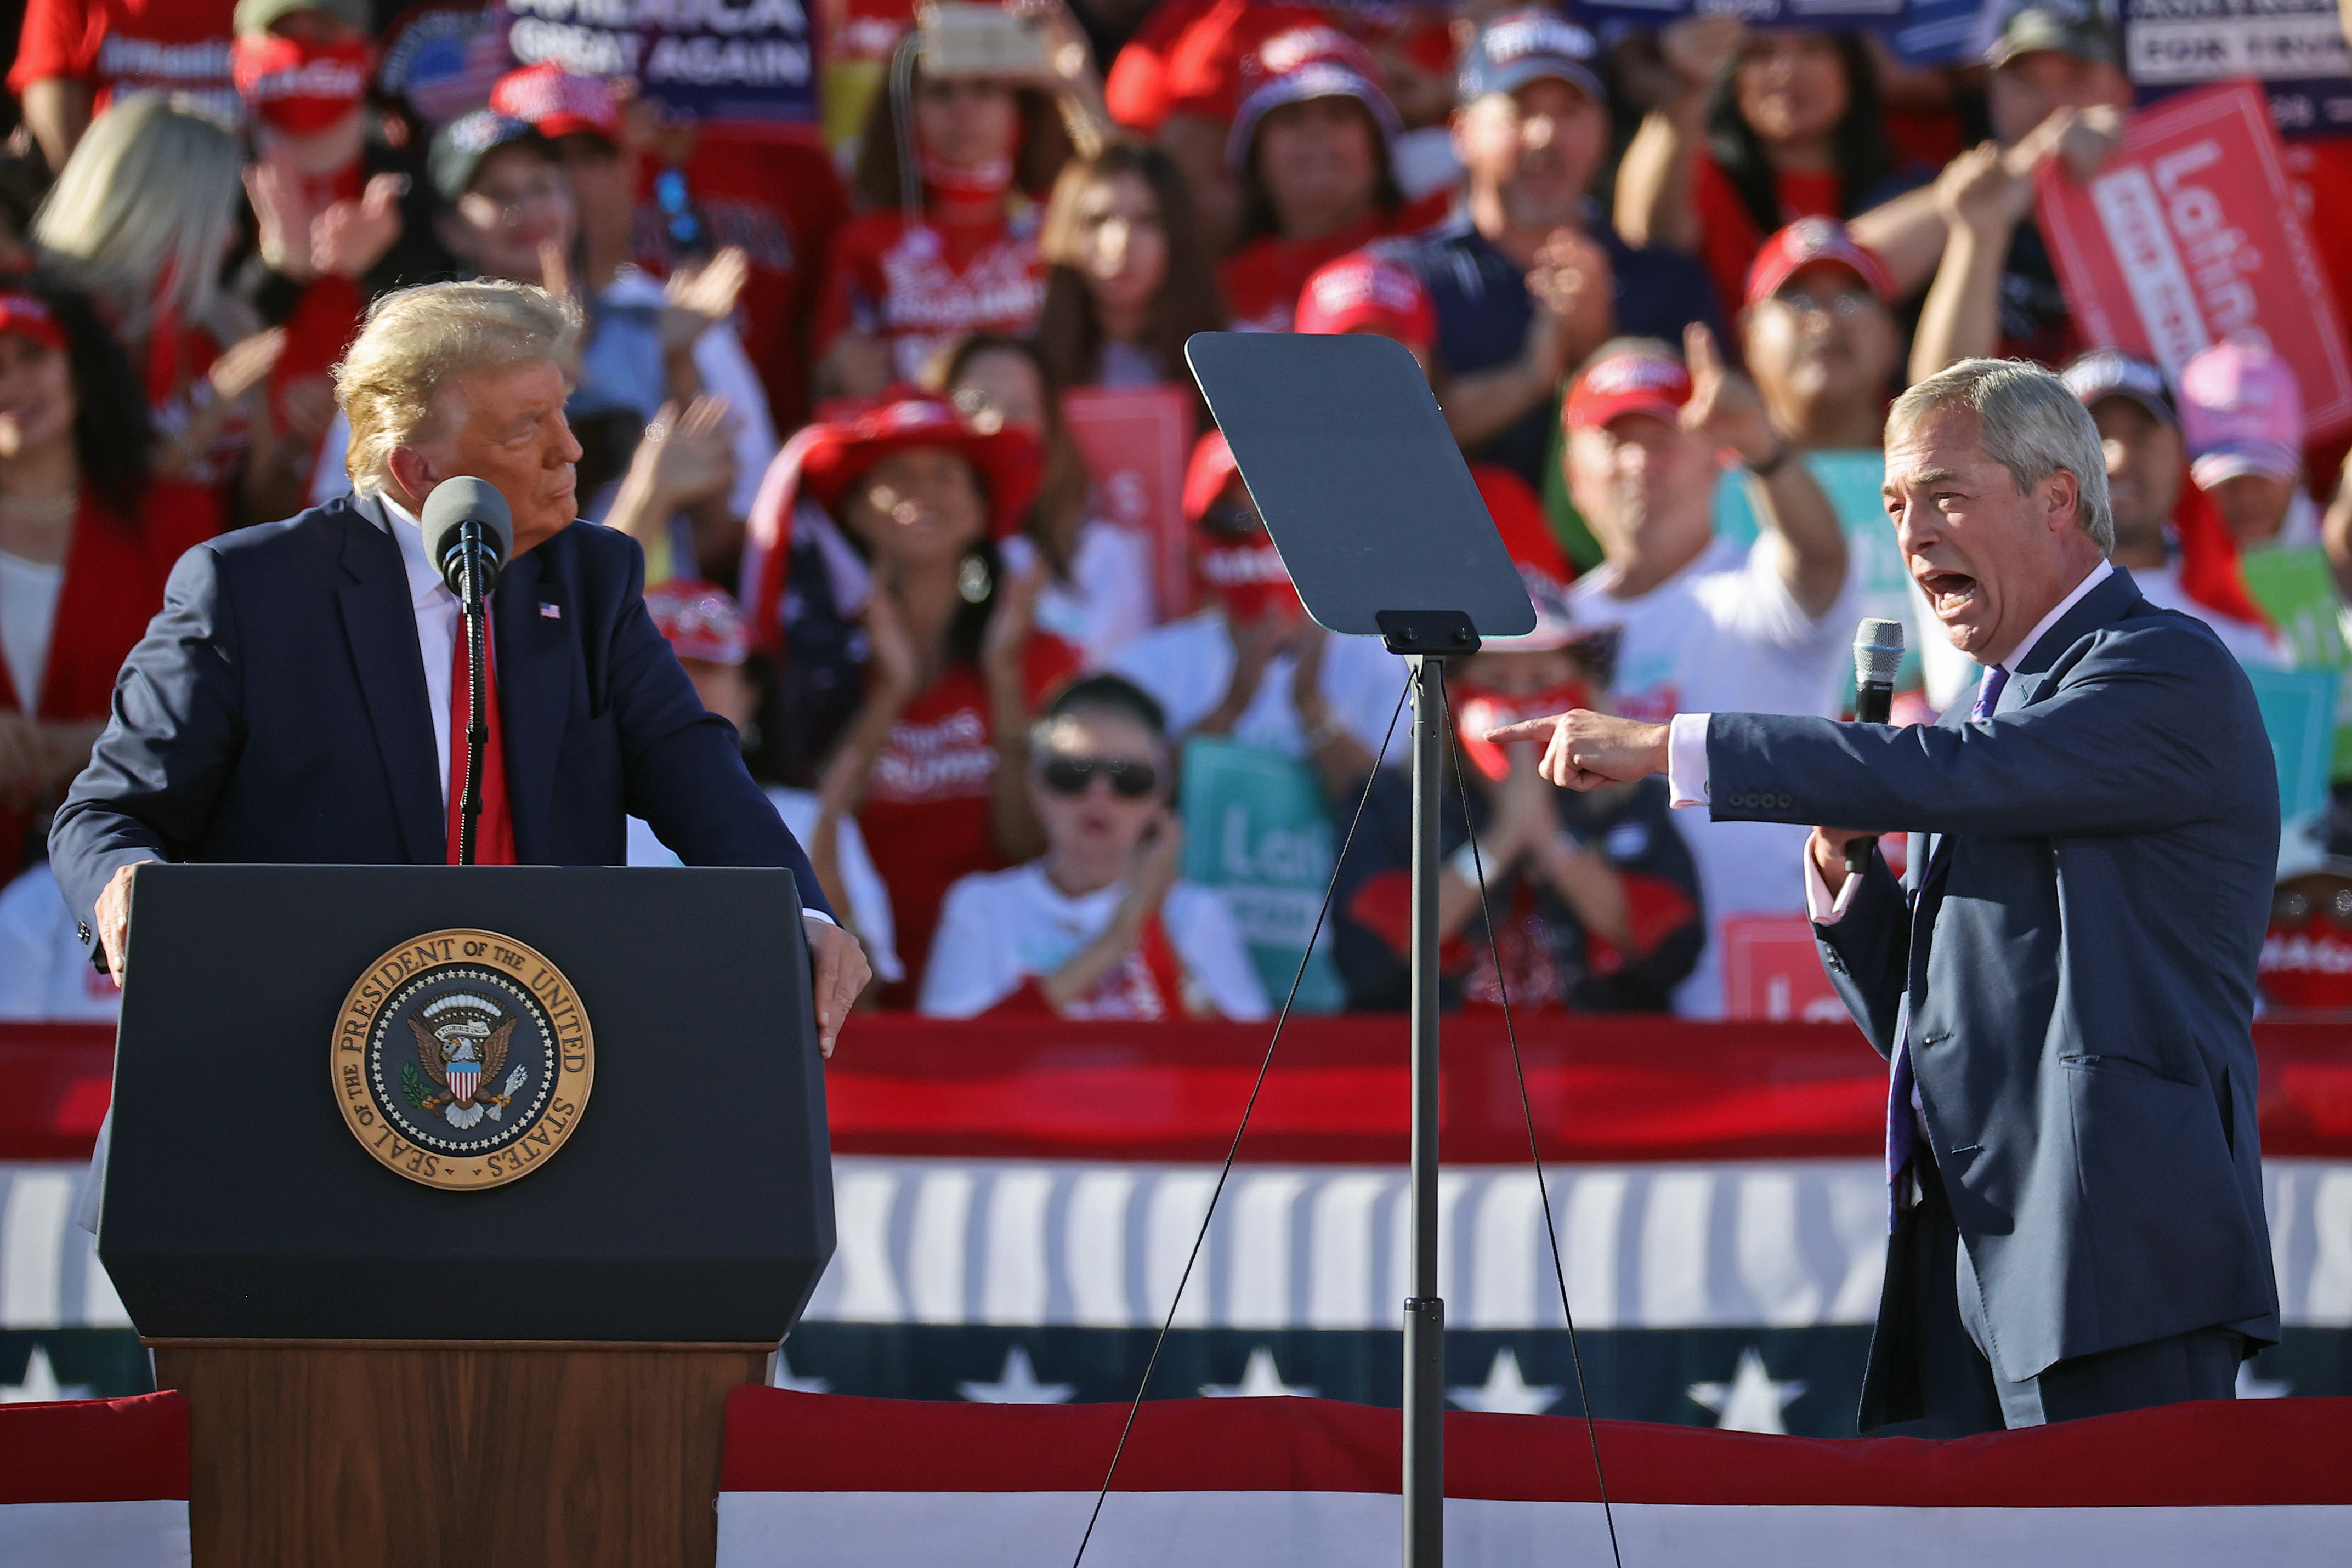 GOODYEAR, ARIZONA - OCTOBER 28: British politician Nigel Farage (R) praises U.S. President Donald Trump during a campaign rally at Phoenix Goodyear Airport October 28, 2020 in Goodyear, Arizona. With less than a week until Election Day, Trump and his opponent, Democratic presidential nominee Joe Biden, are campaigning across the country. (Photo by Chip Somodevilla/Getty Images)